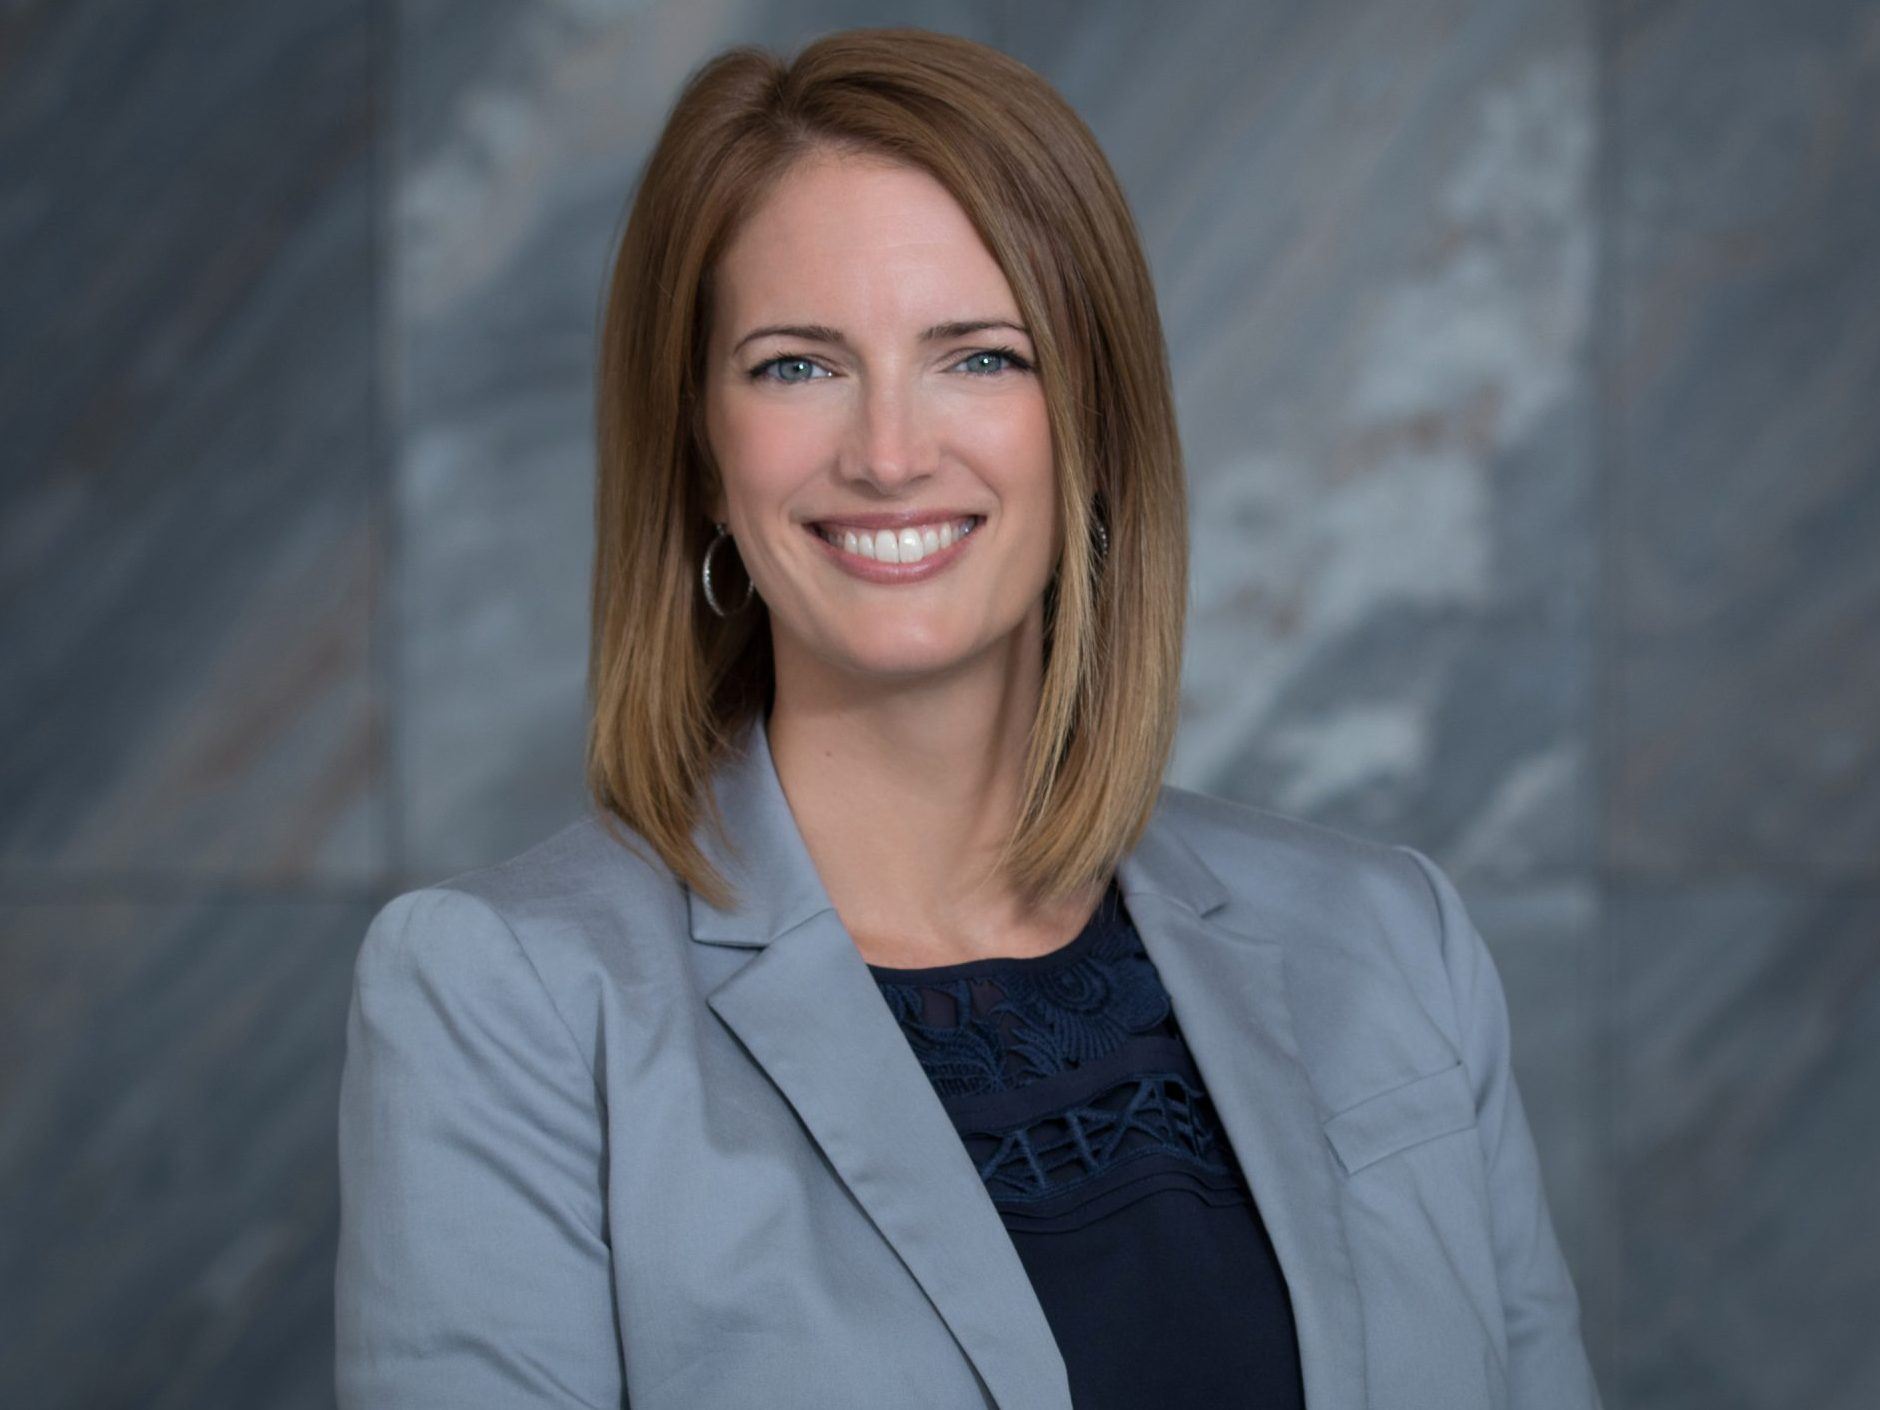 Lauren Kelch, Senior Vice President, Patrinely Group. Image courtesy of Patrinely Group